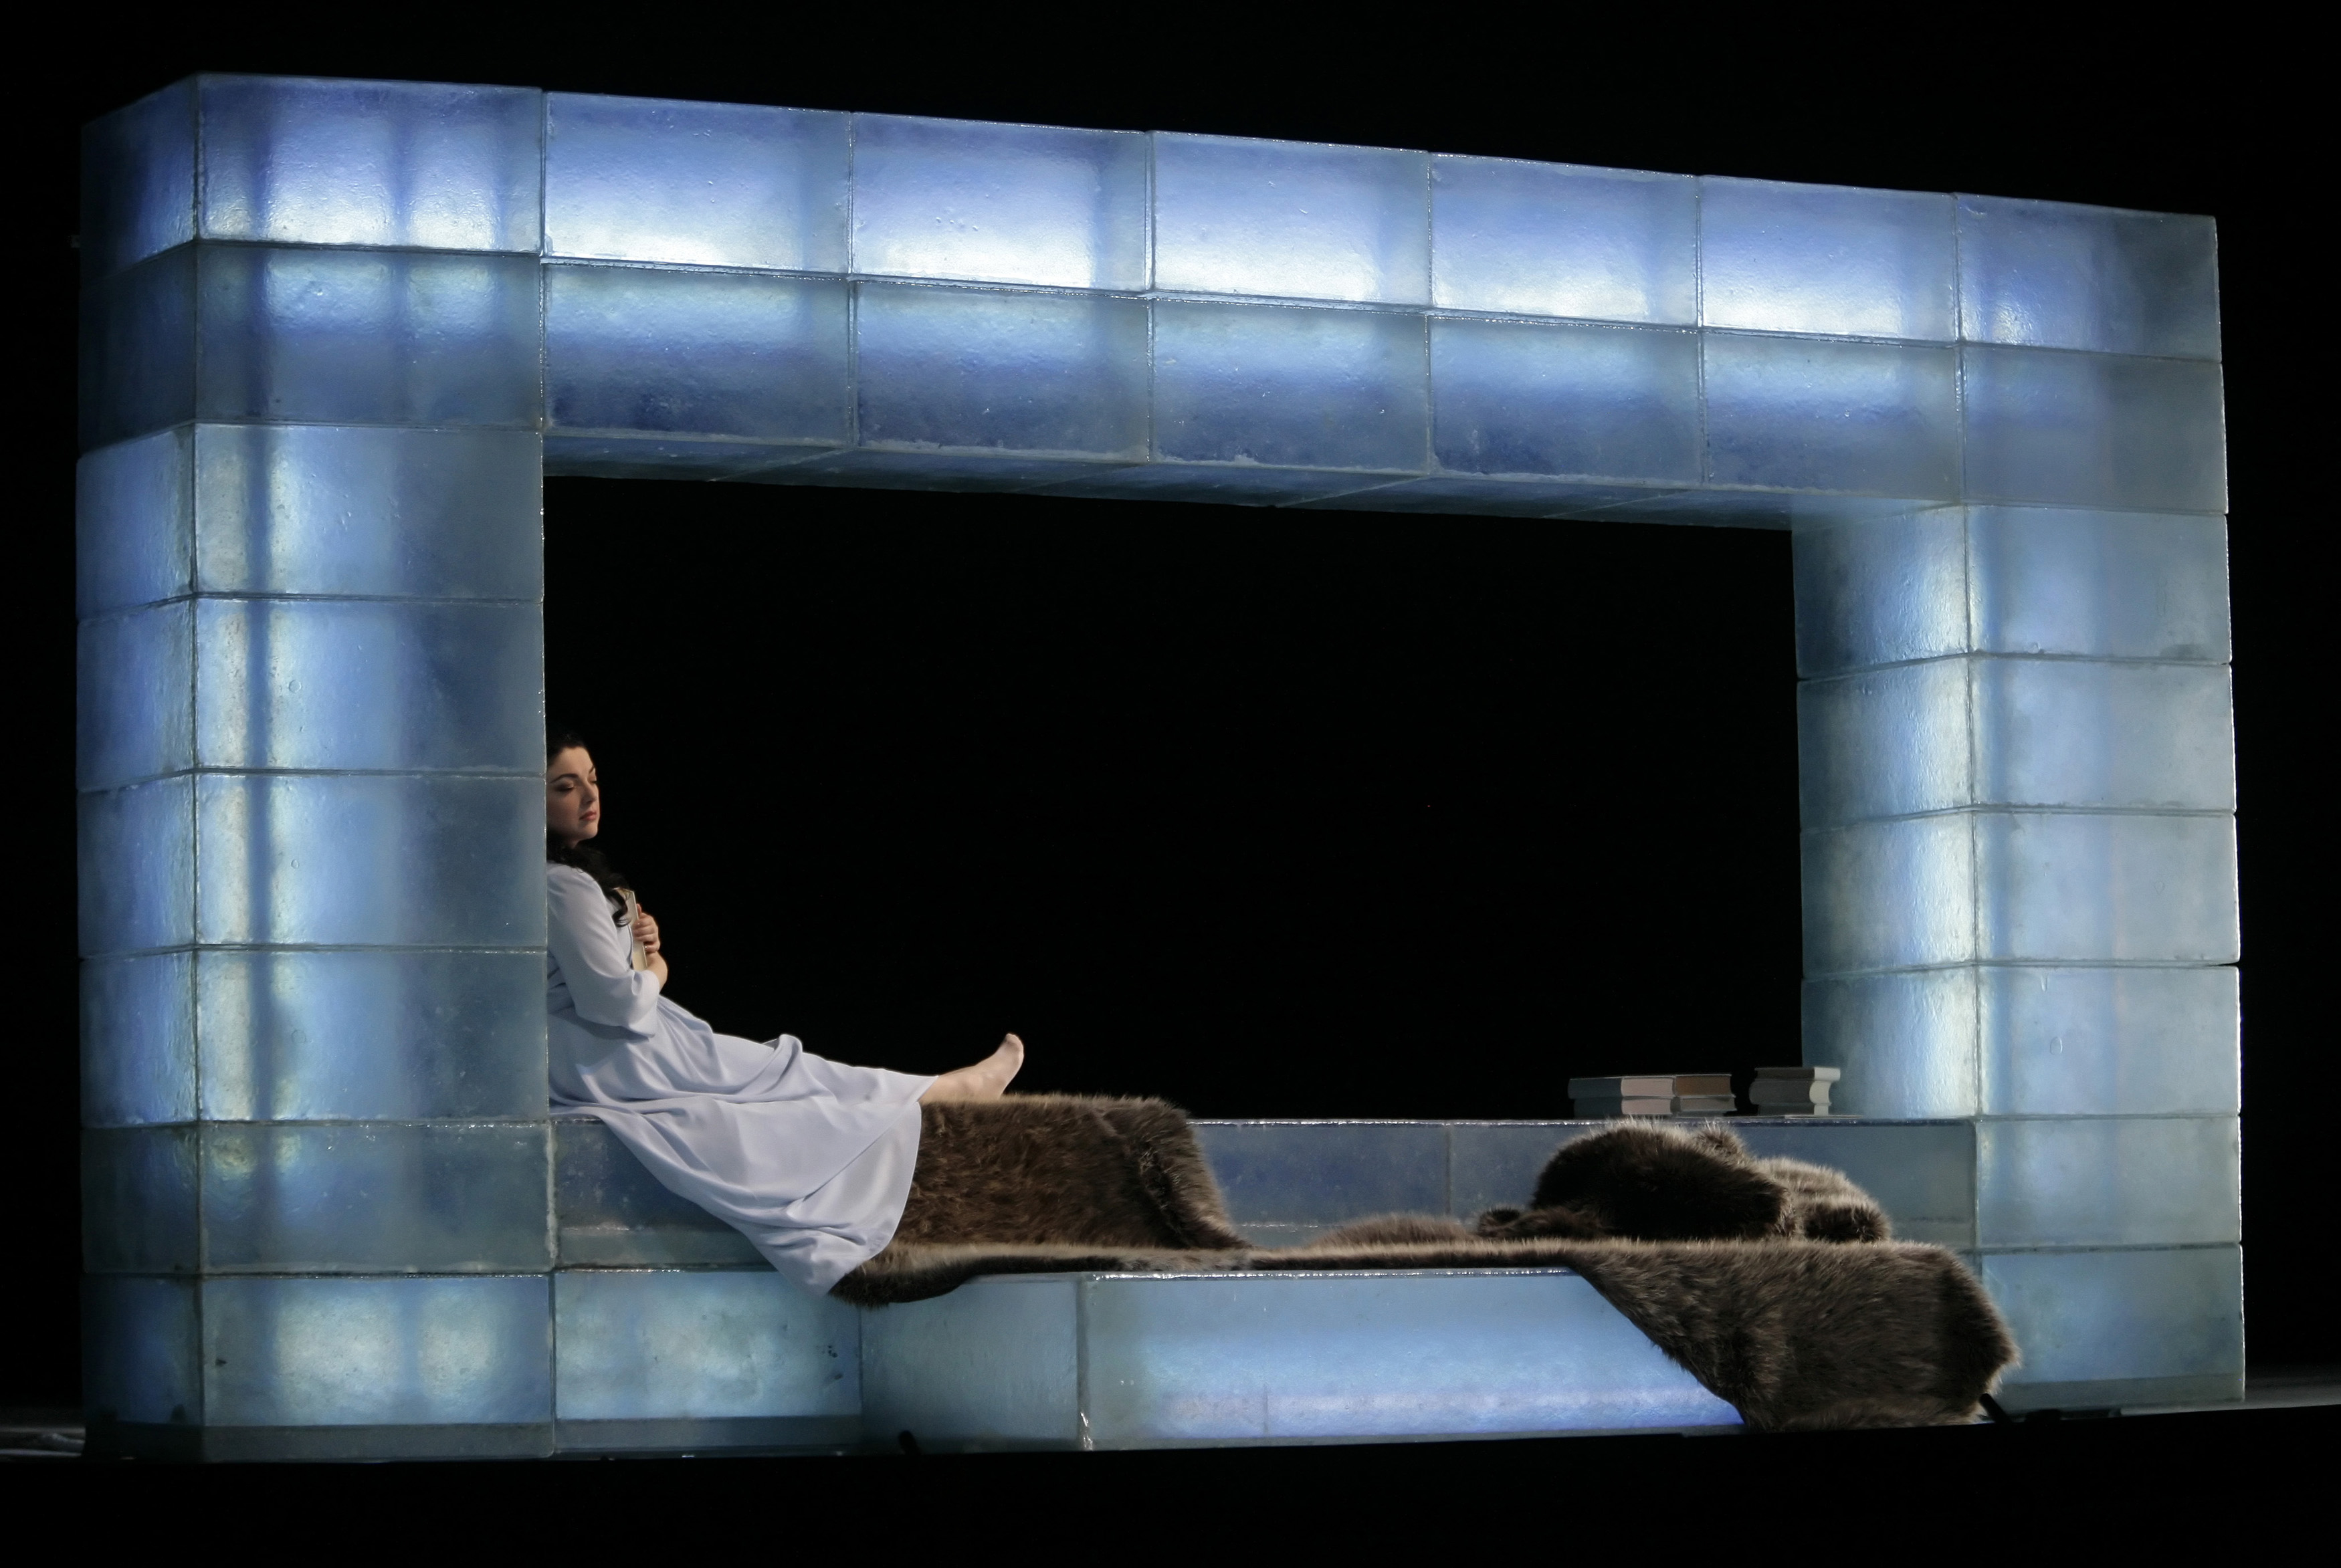 Singer Tamar Iveri performs on stage as Tatjana during a dress rehearsal of Pyotr Illyich Tchaikovsky's opera Eugene Onegin at Vienna's State Opera March 3, 2009.